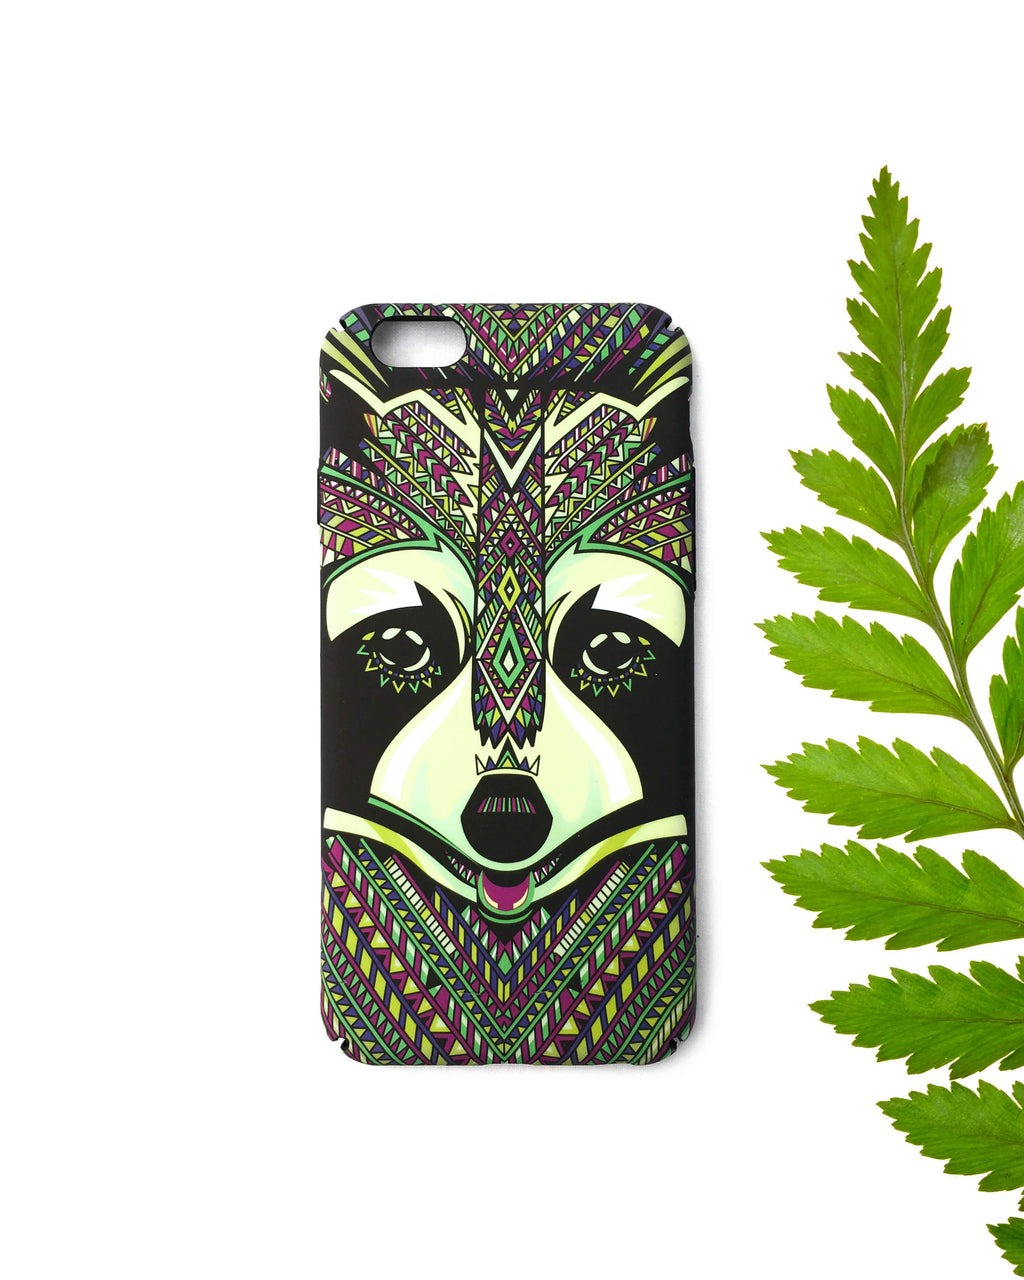 Raccoon Phone Case (Glows in the Dark) - Cloud Accessories, LLC